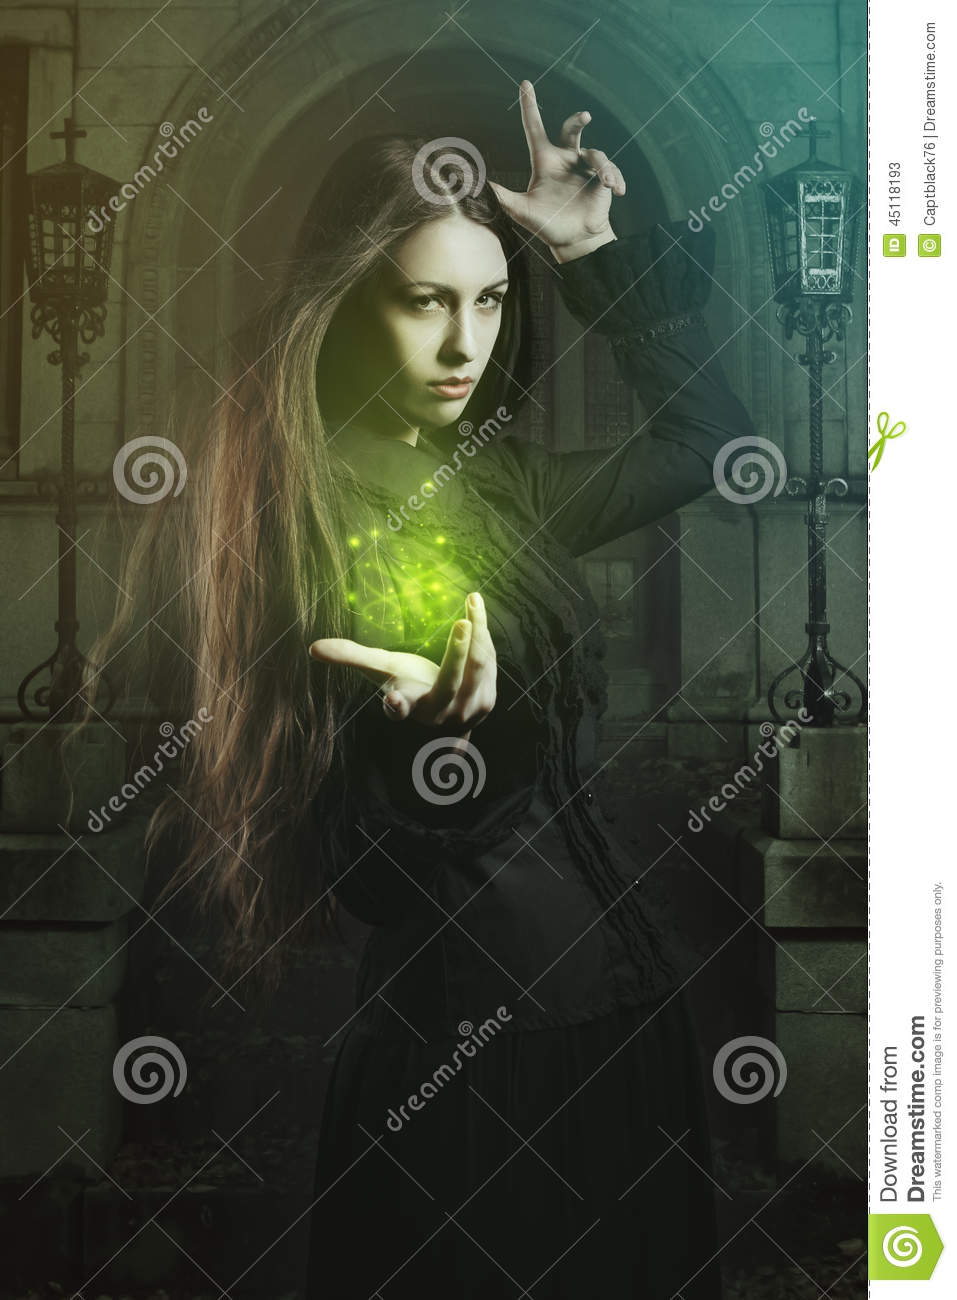 40 079 Beautiful Witch Photos Free Royalty Free Stock Photos From Dreamstime